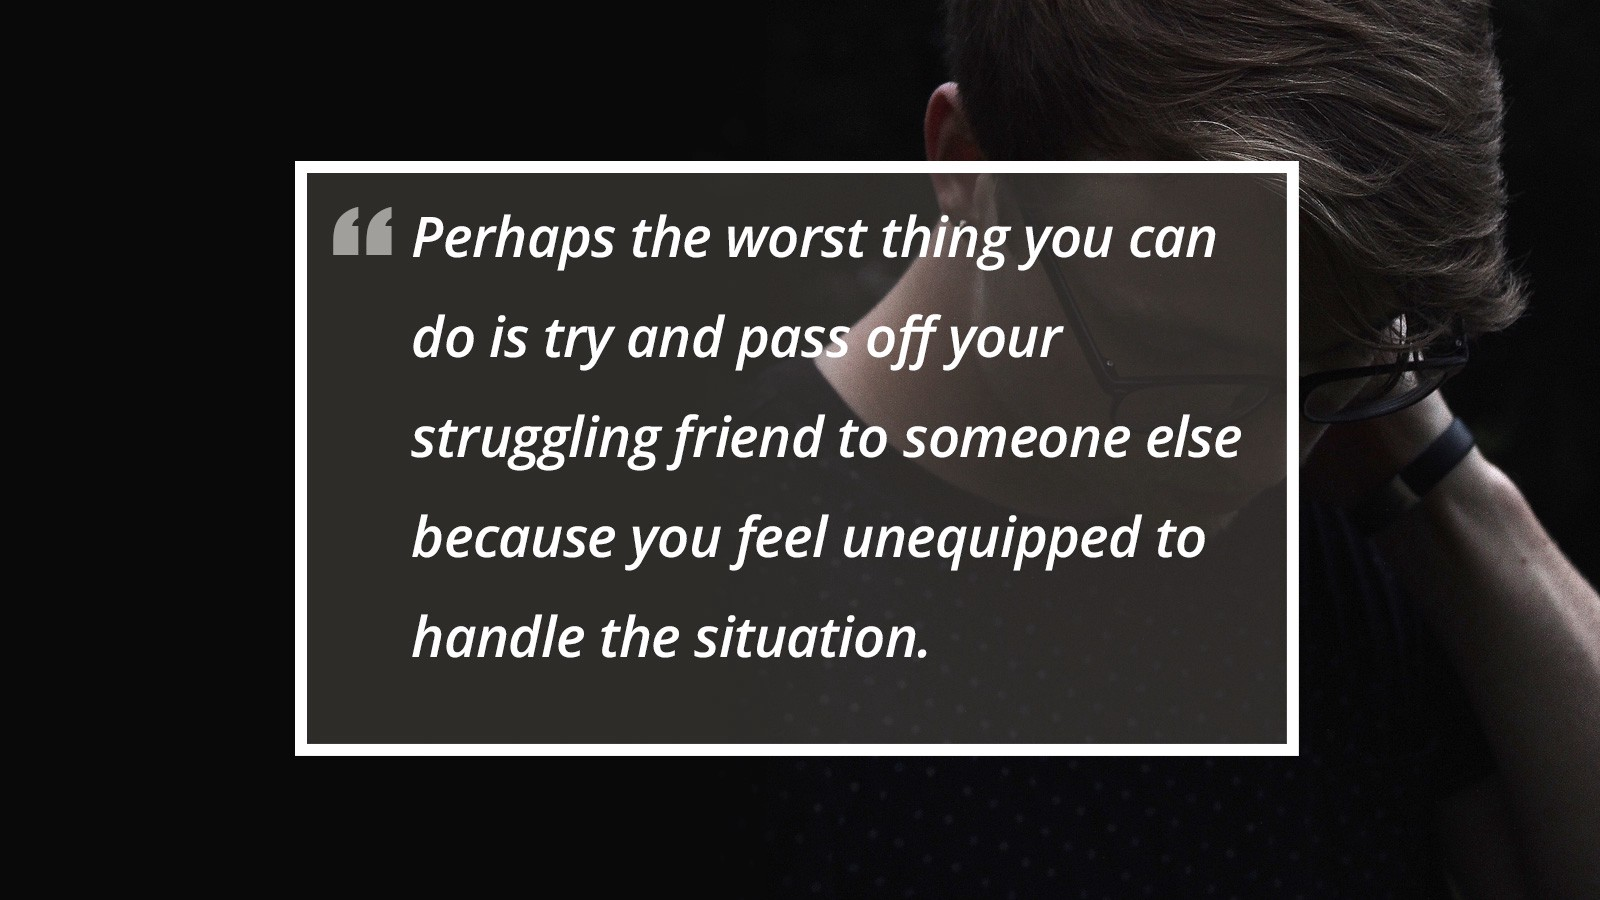 7 Simple Ways You Can Help Someone Struggling with Suicide